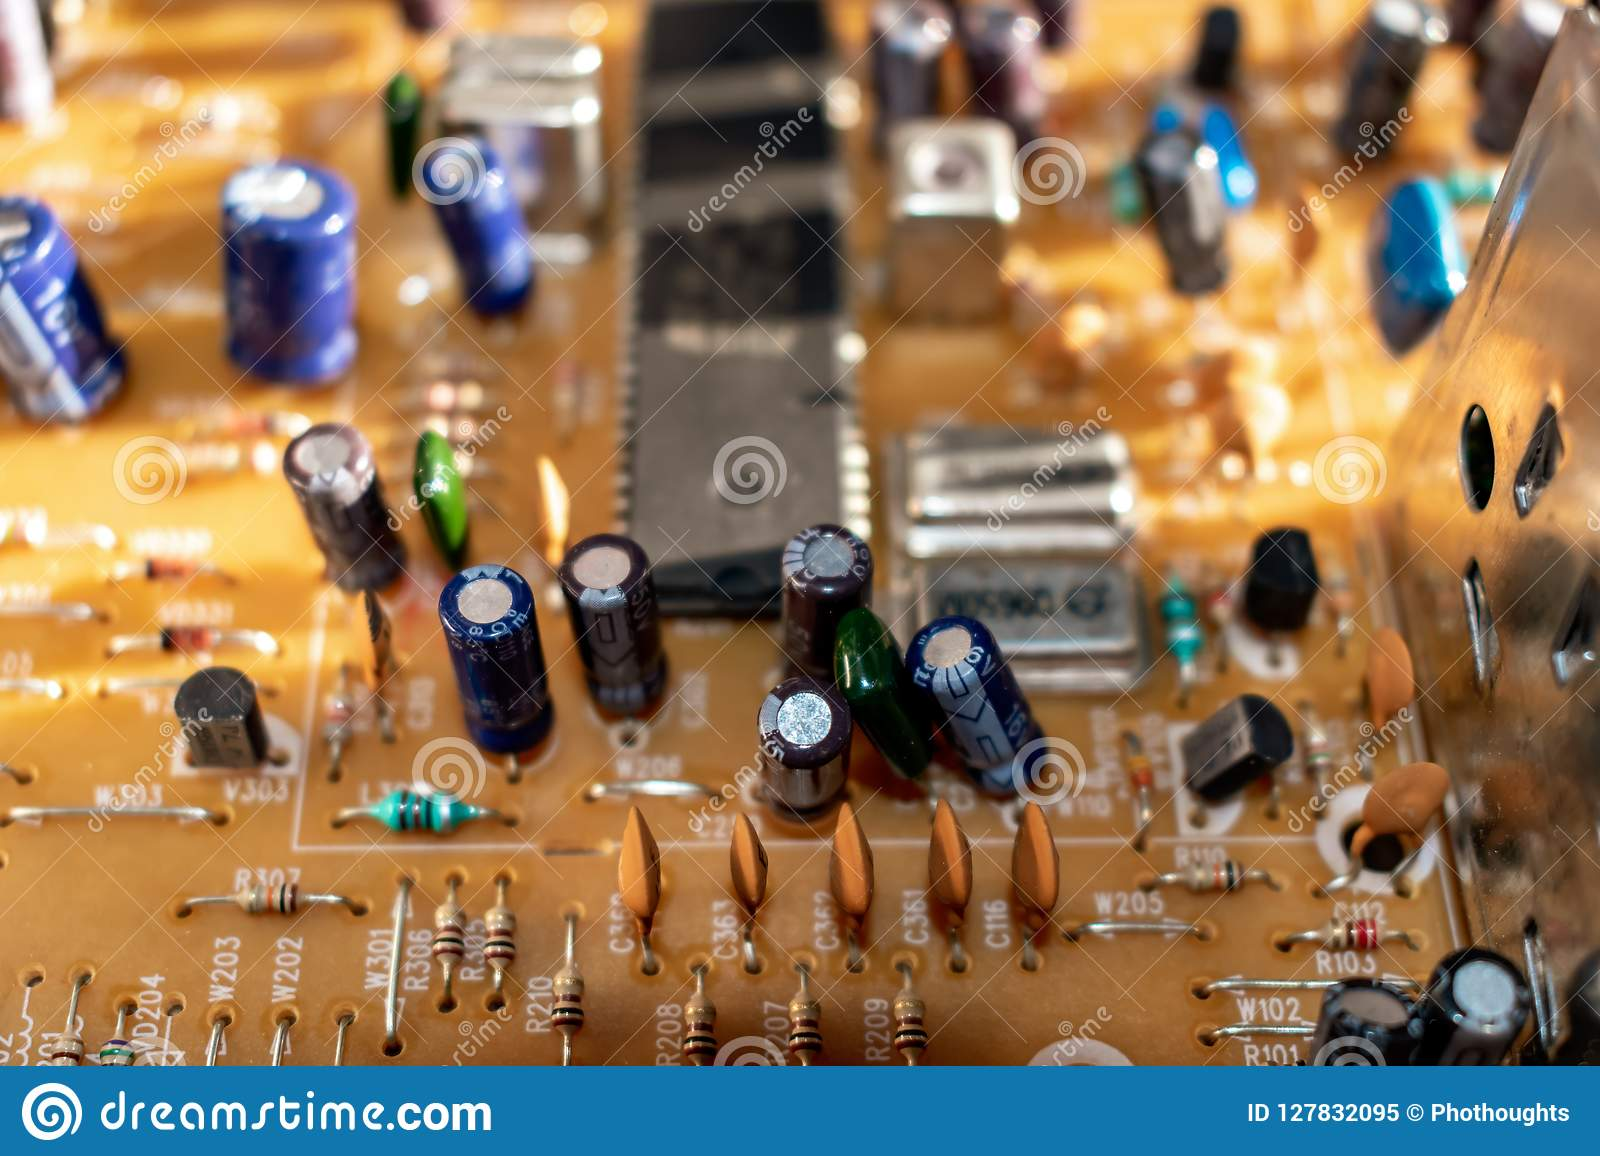 Electronic components on circuit board